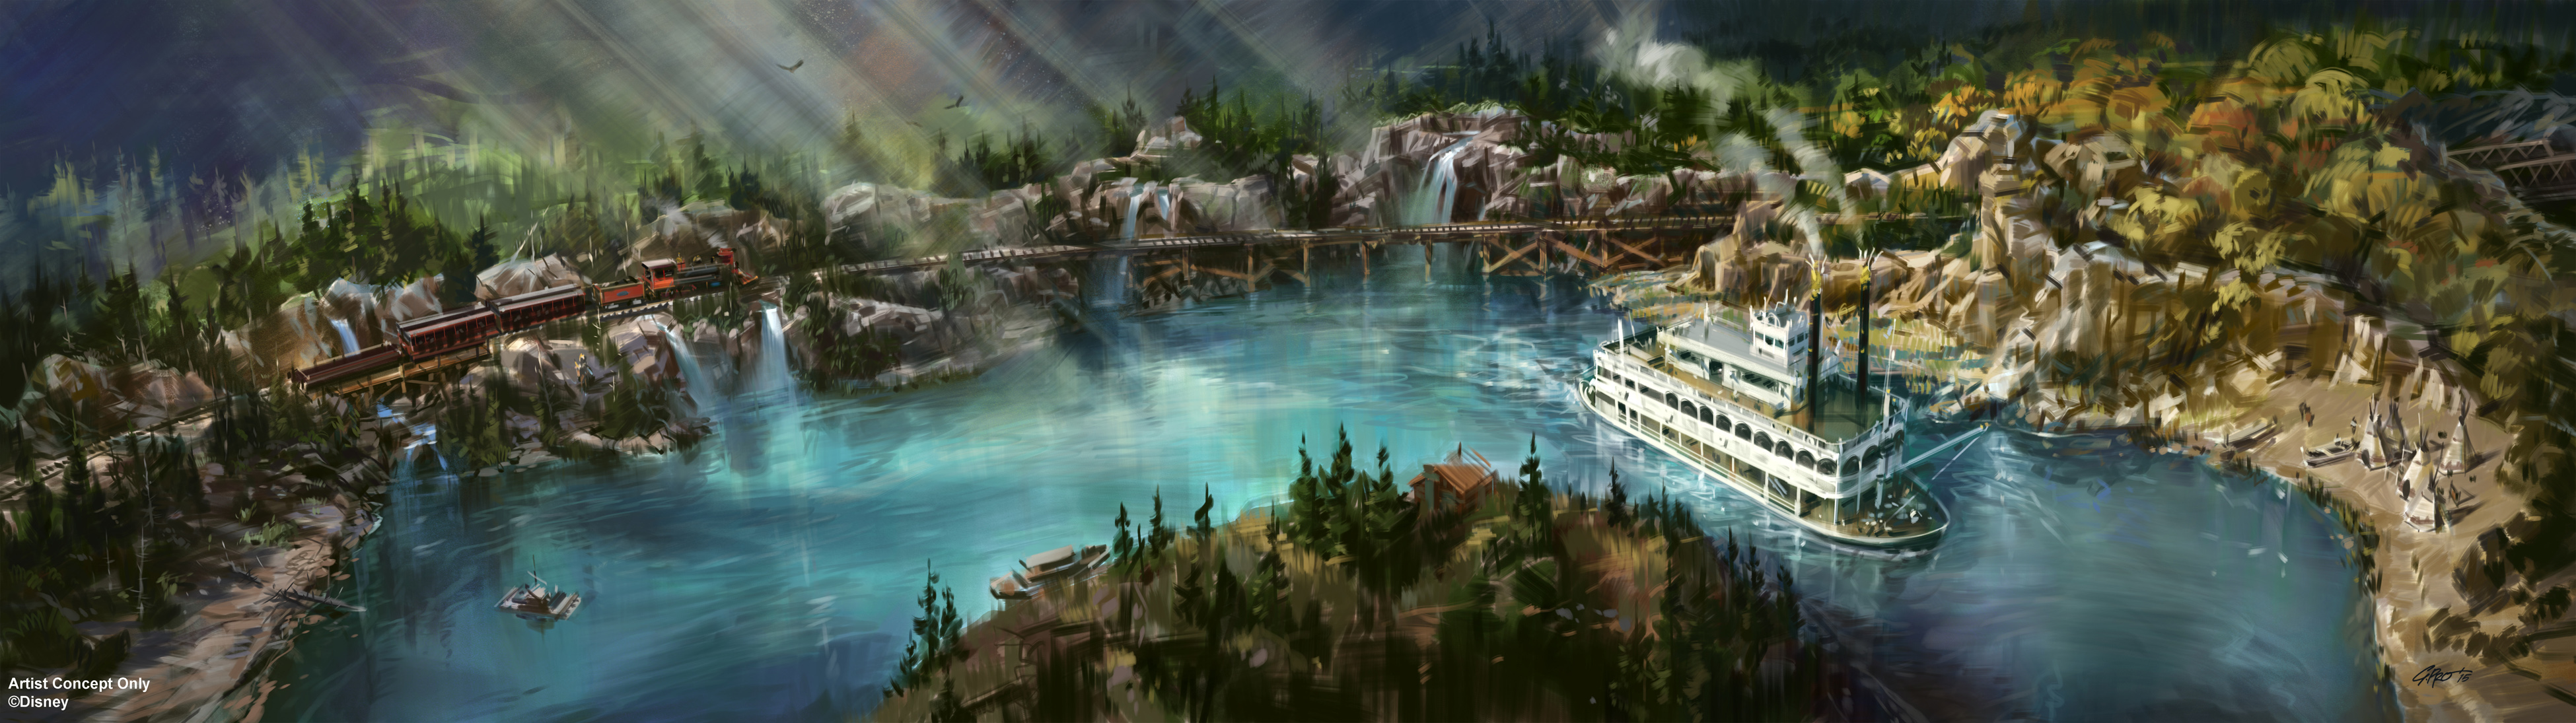 Artist's Rendering Reveals New Look Coming to Rivers of America in Disneyland Park (Disney Release)